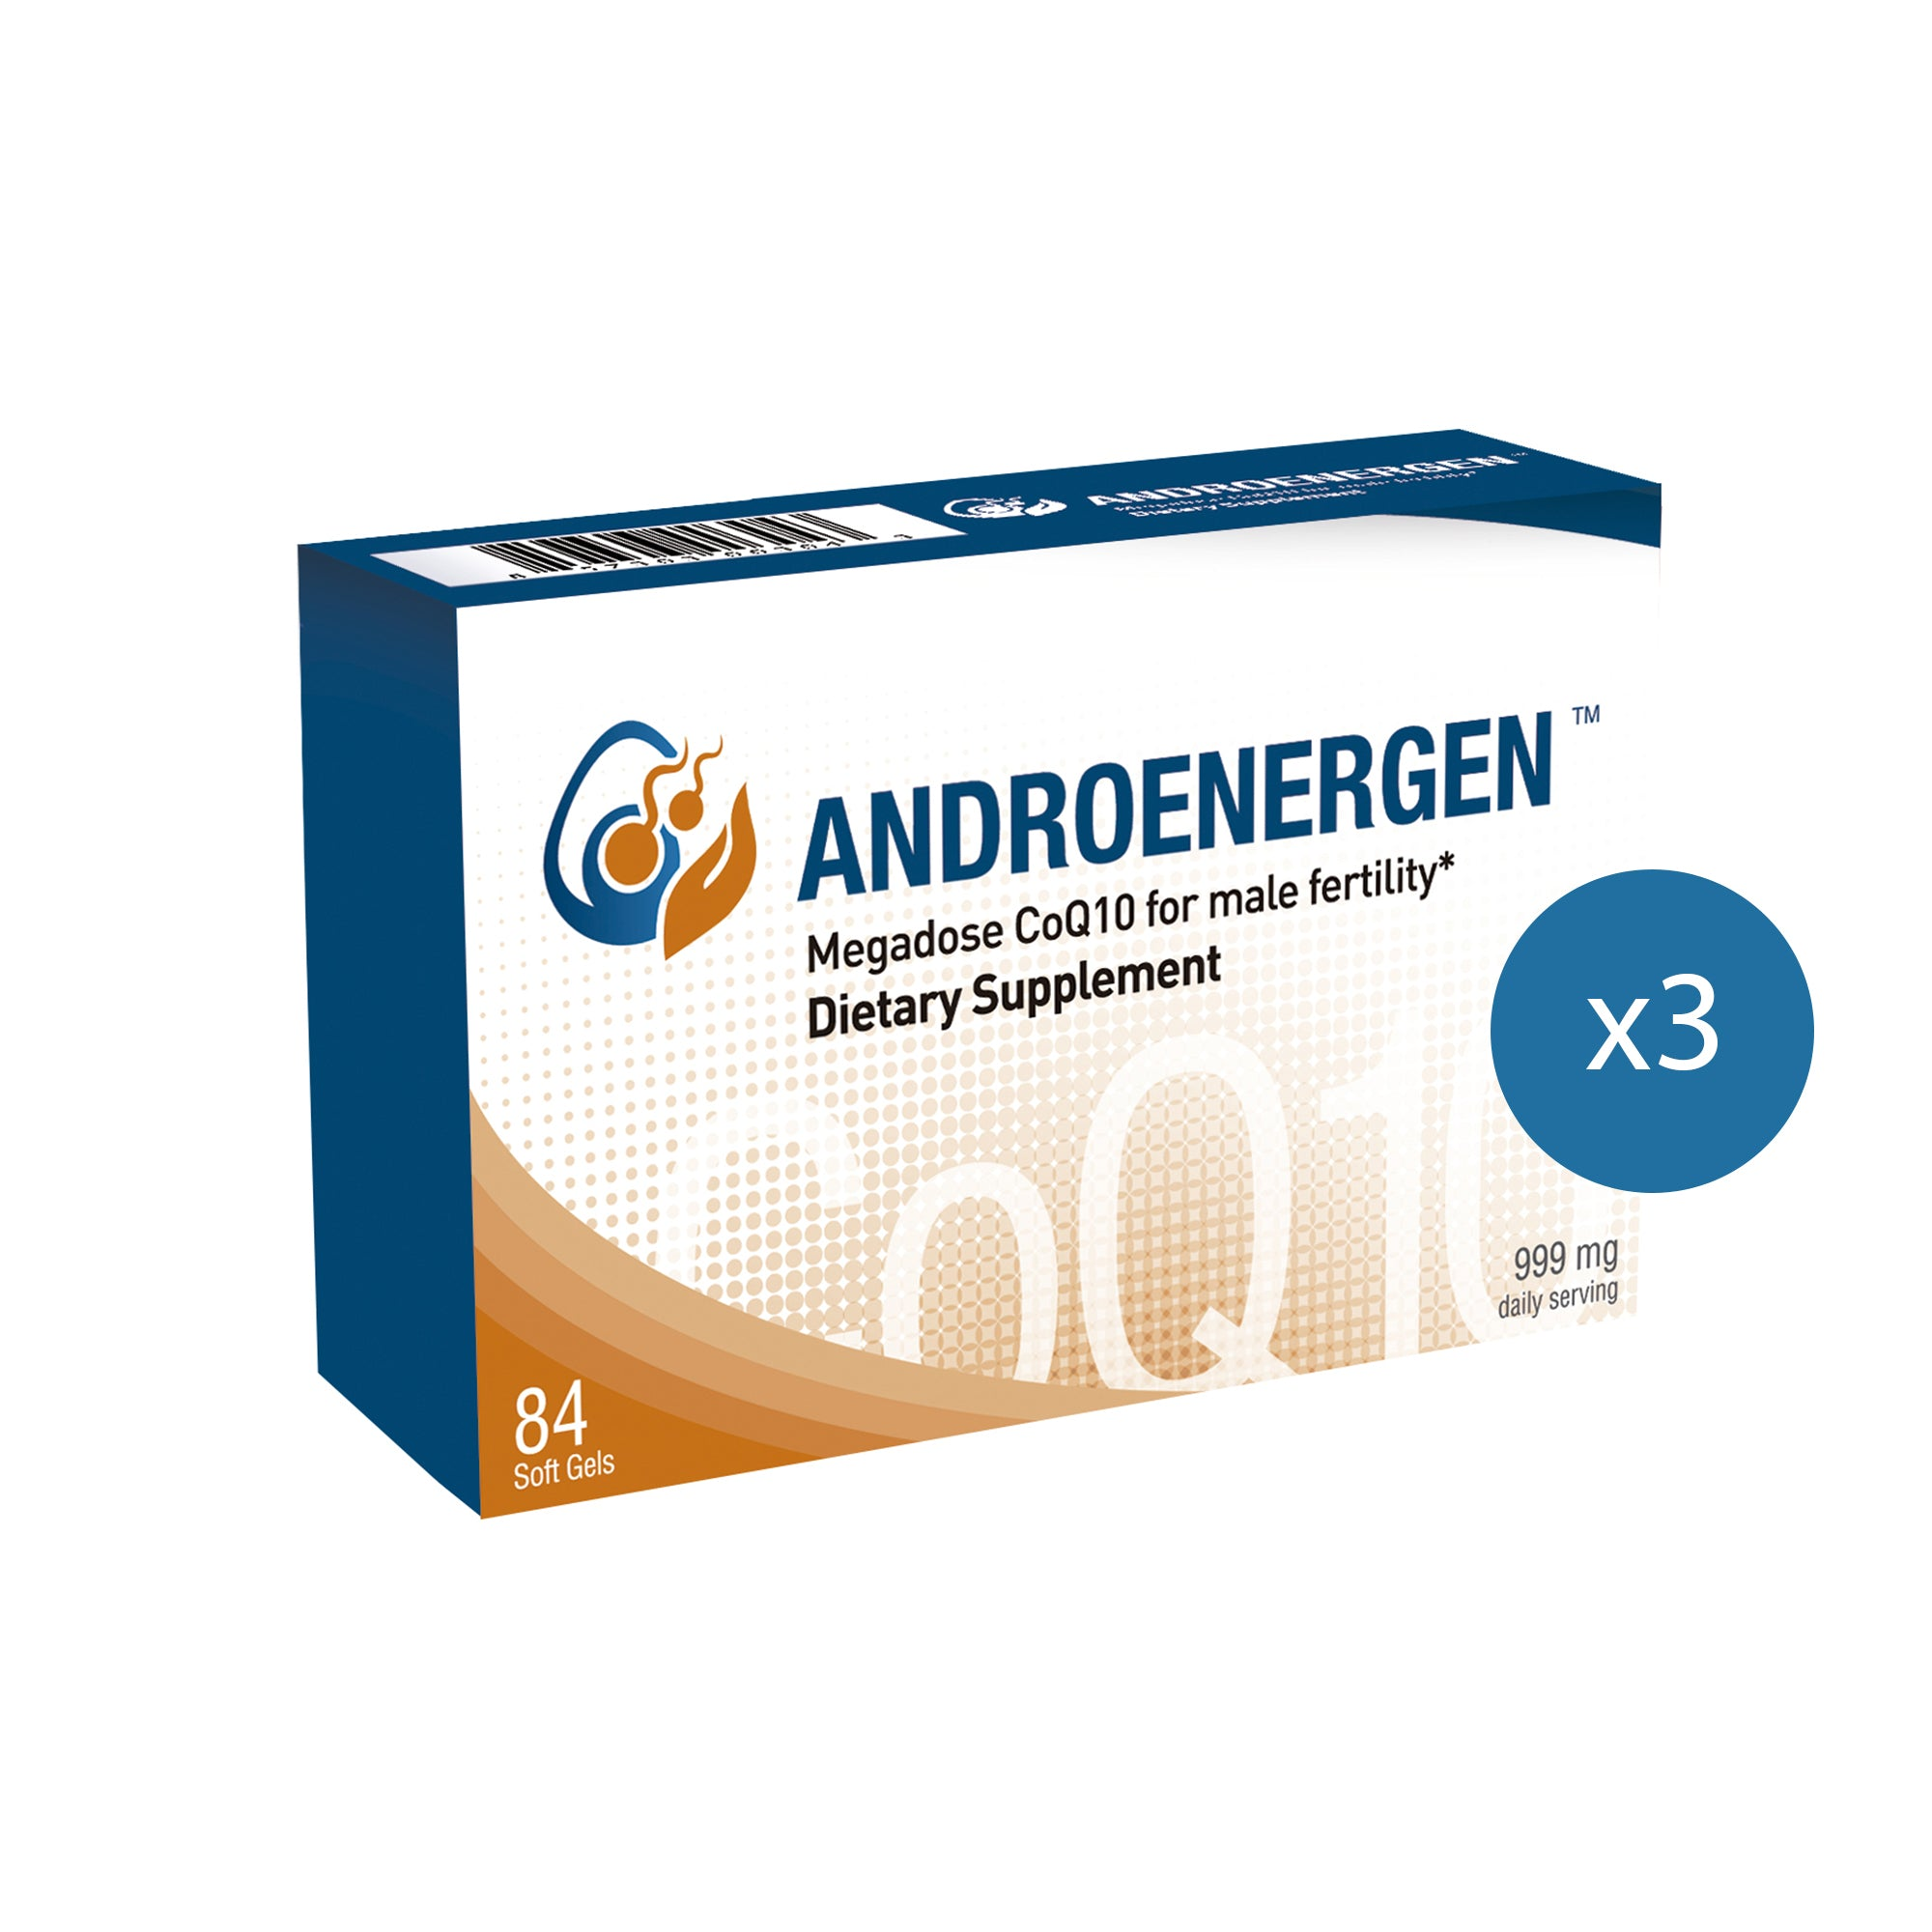 ANDROENERGEN™ CoQ10 for Men, 3-Pack